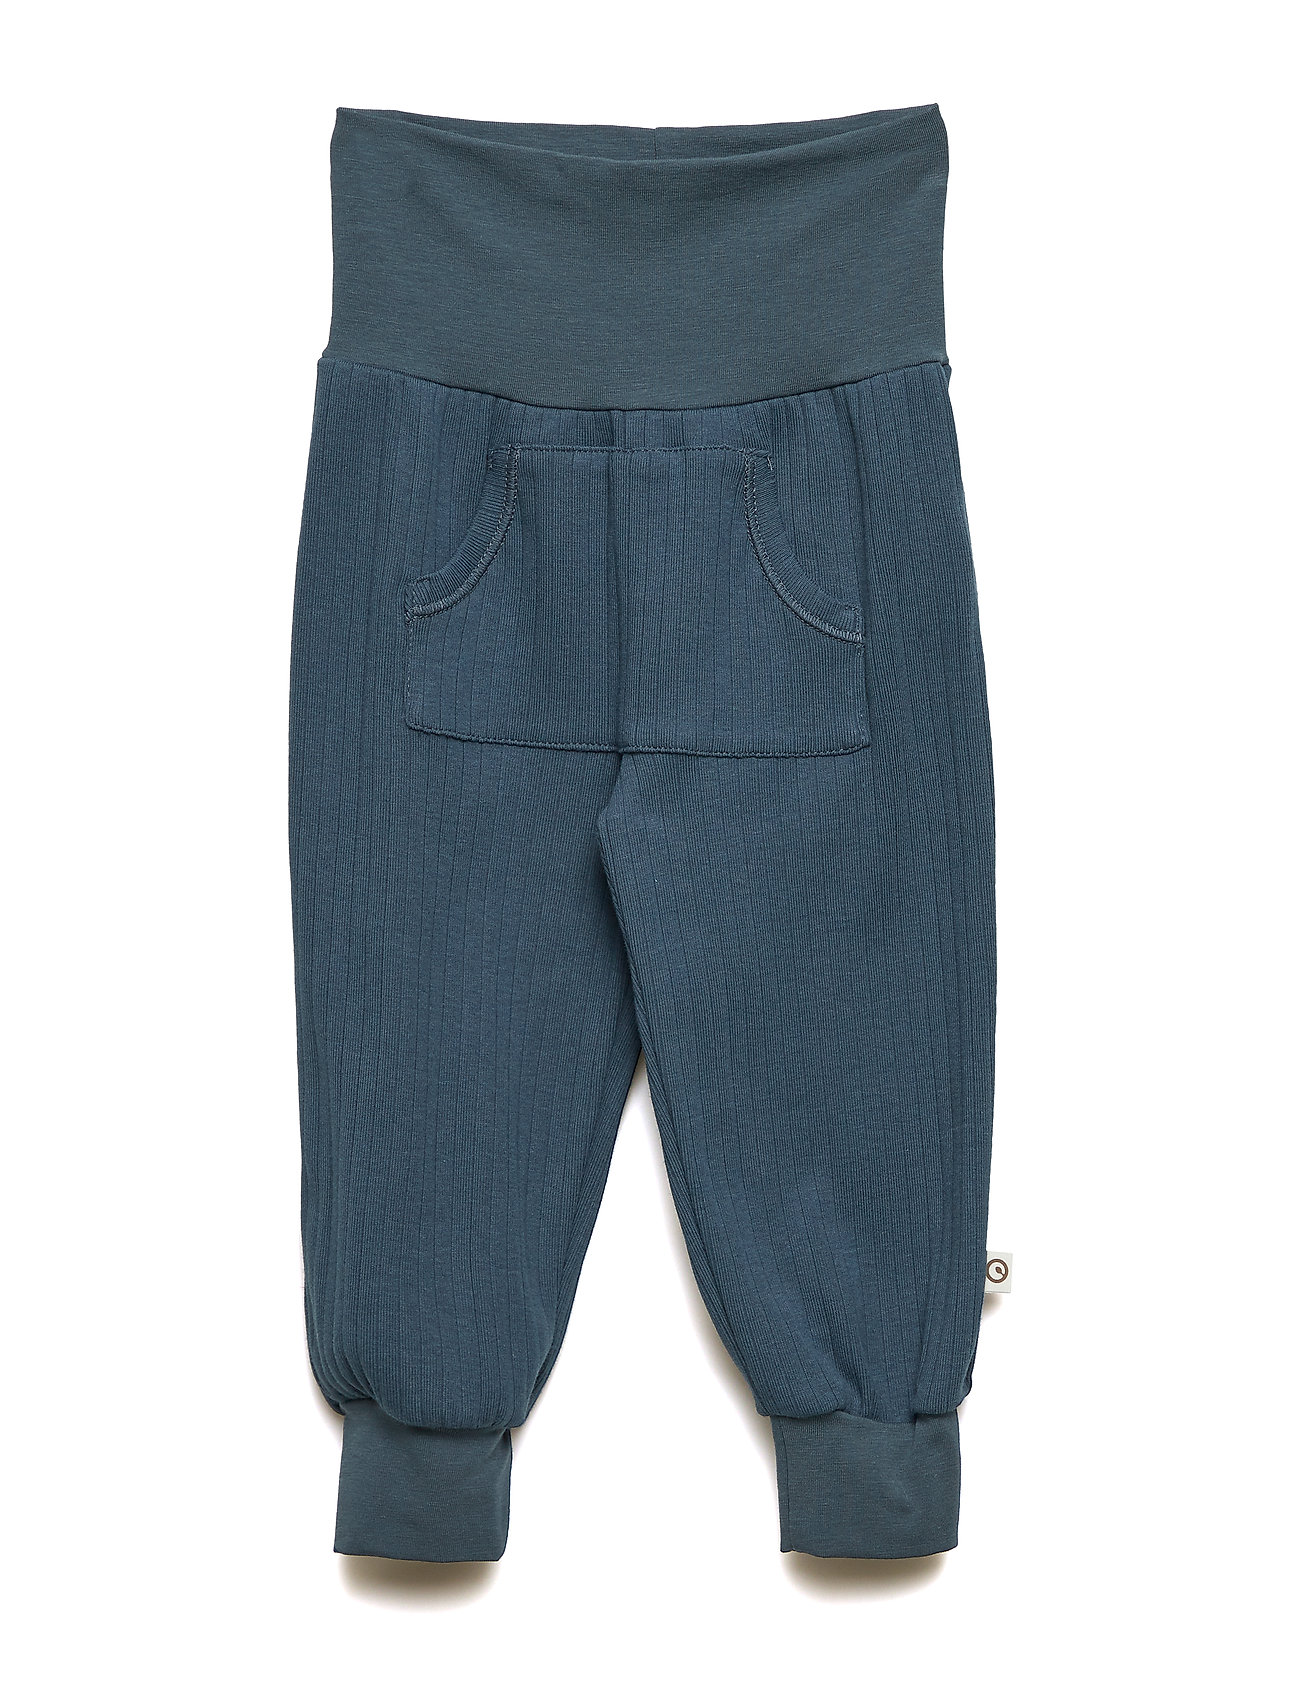 Müsli by Green Cotton Cozy pocket pants - MIDNIGHT